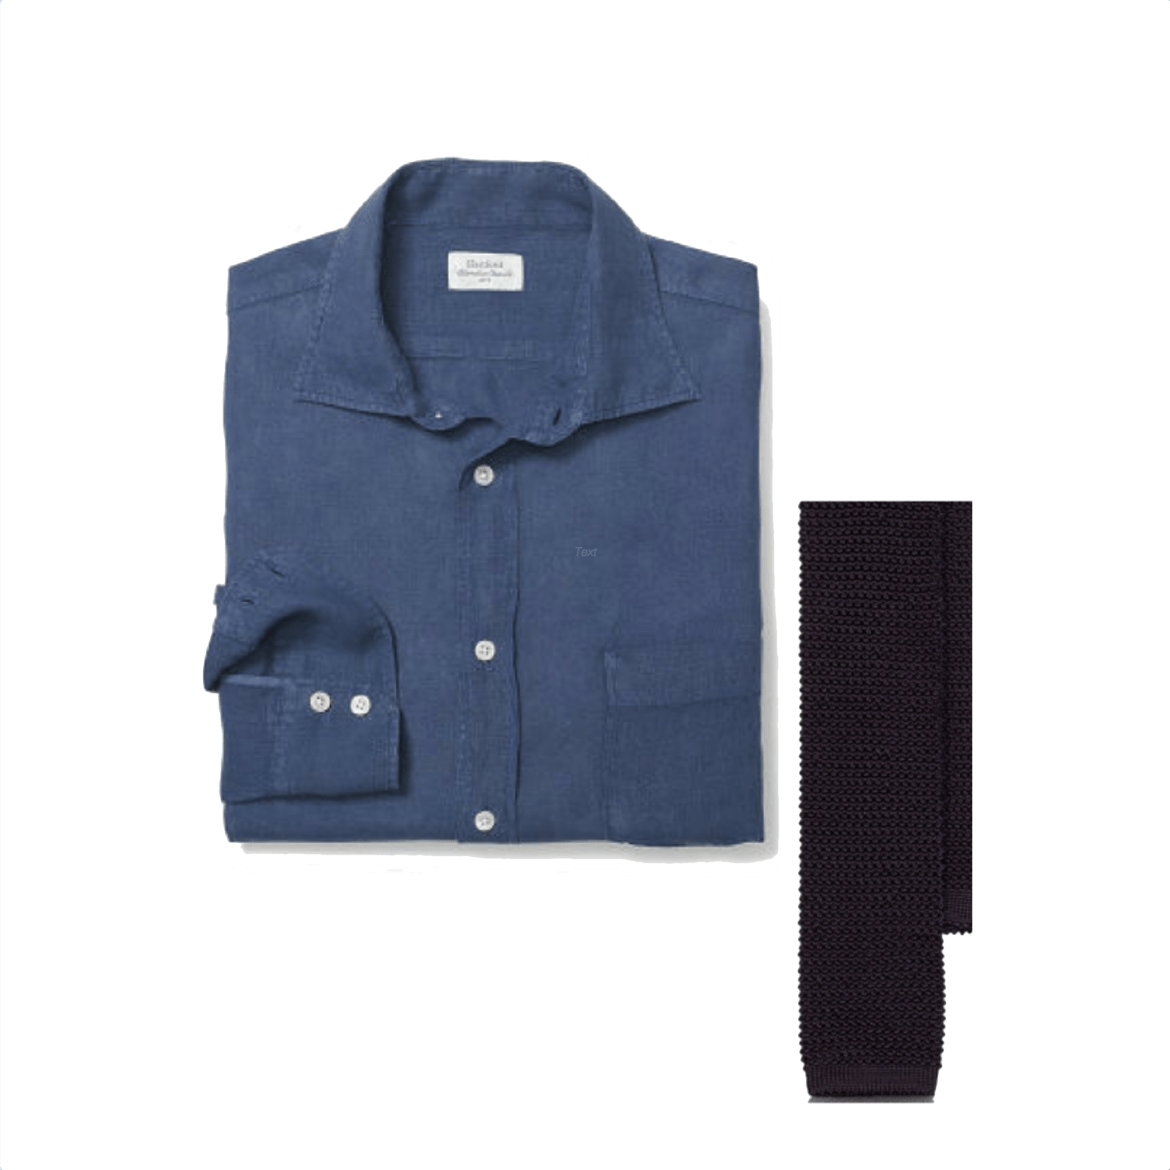 Club Monaco Shirt & Ralph Knit Tie